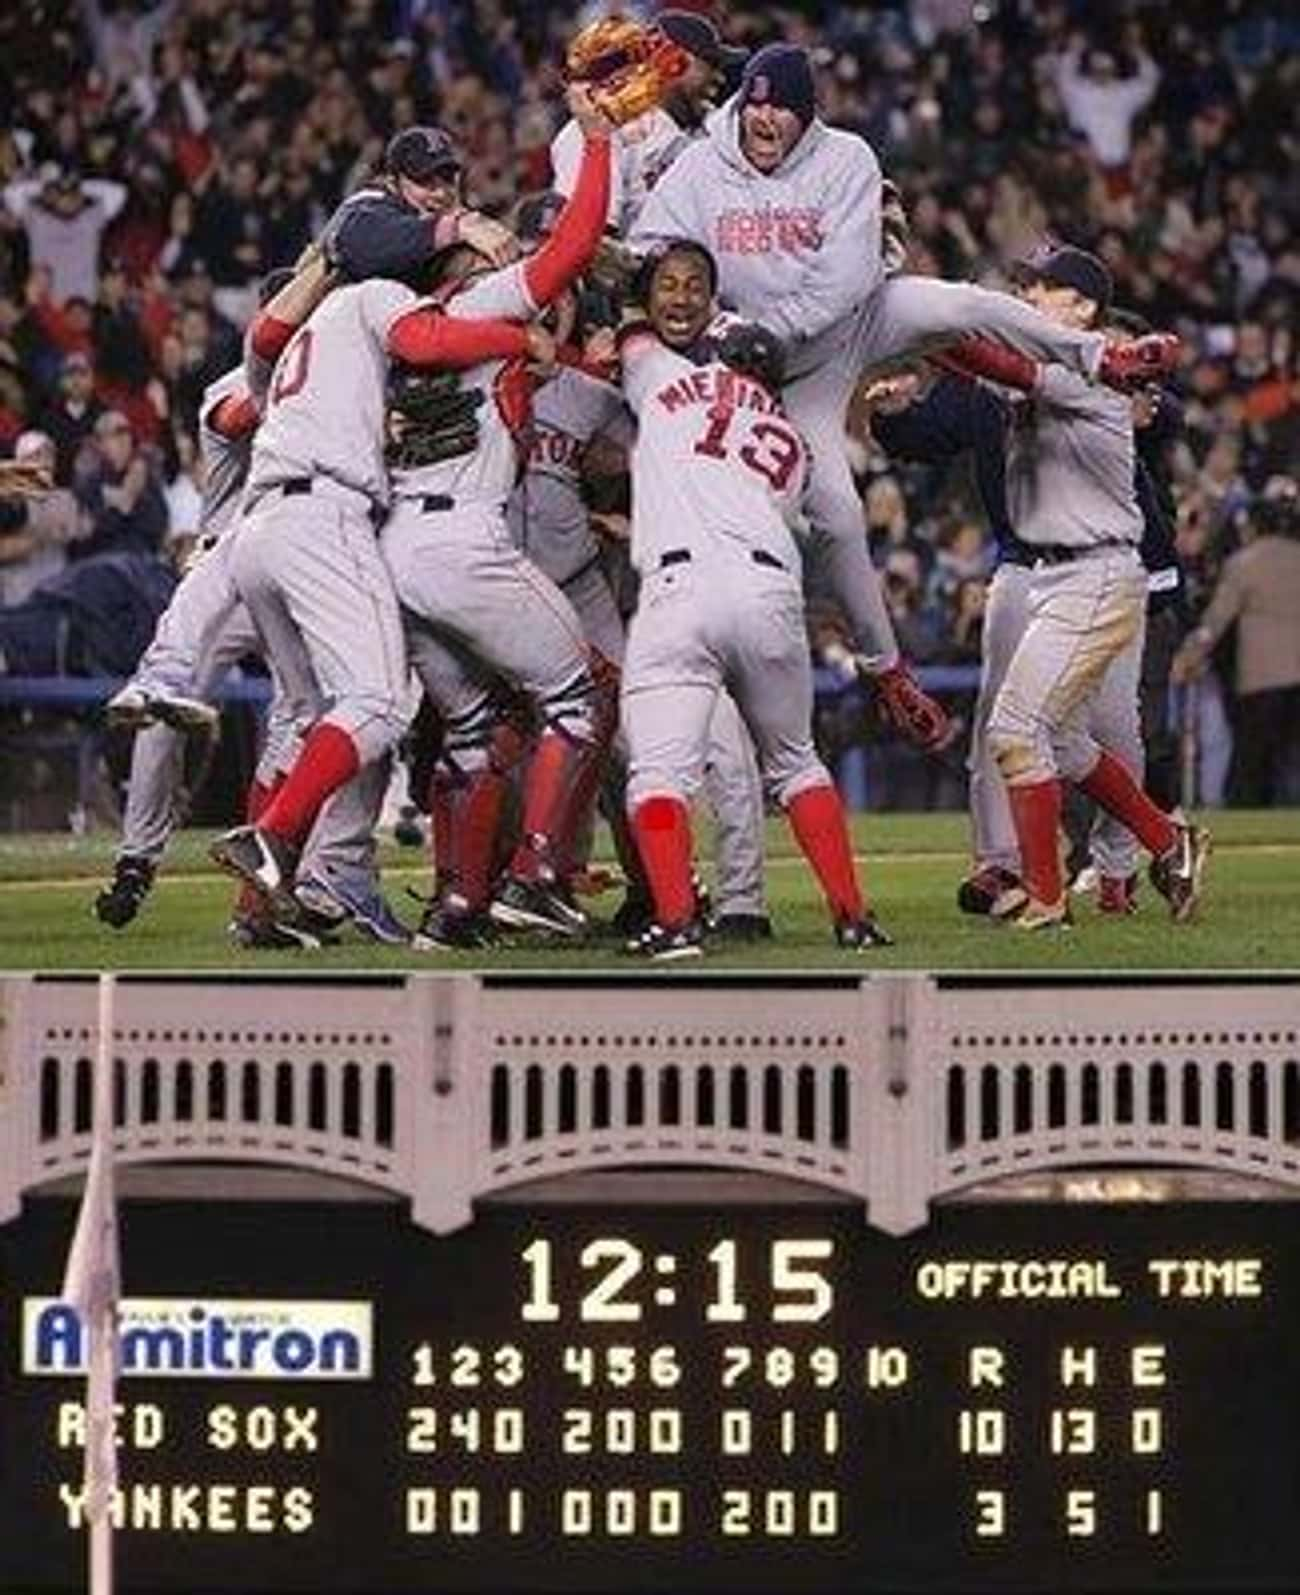 Losing the 2004 ALCS after leading the series 3-0.